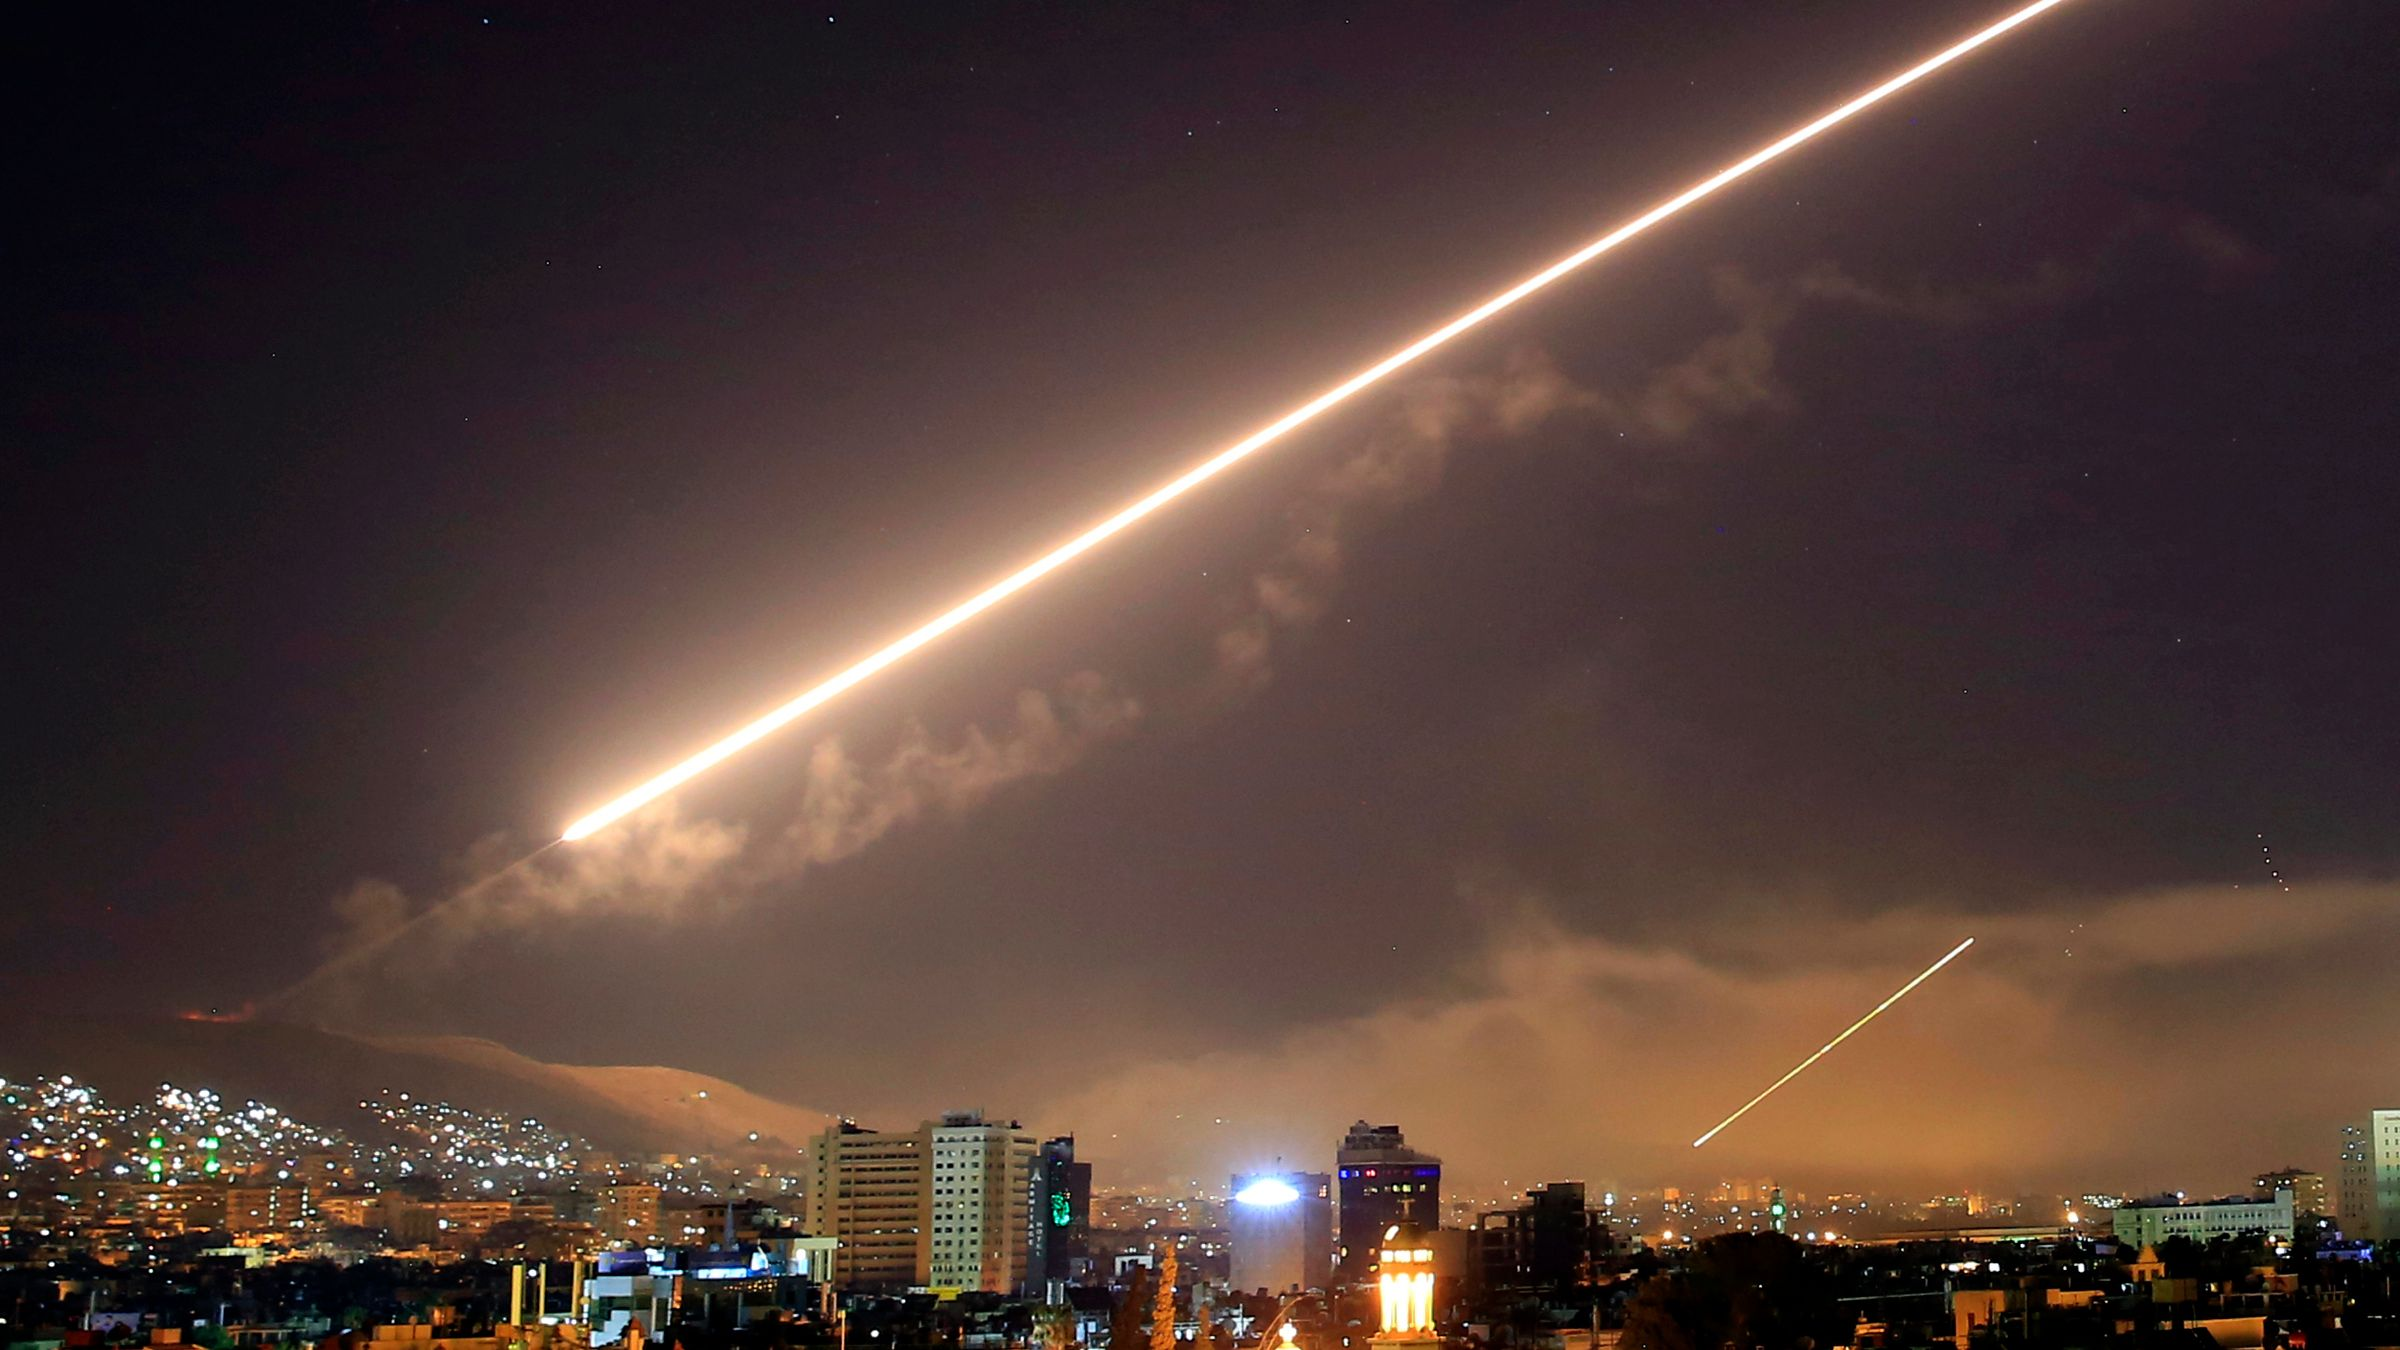 Amber chrome reminiscent of the 'Shock and Awe' bombing of Baghdad in 2003, surface-to-air missiles illuminate the night sky of Damascus.    AP Photo/Hassan Ammar